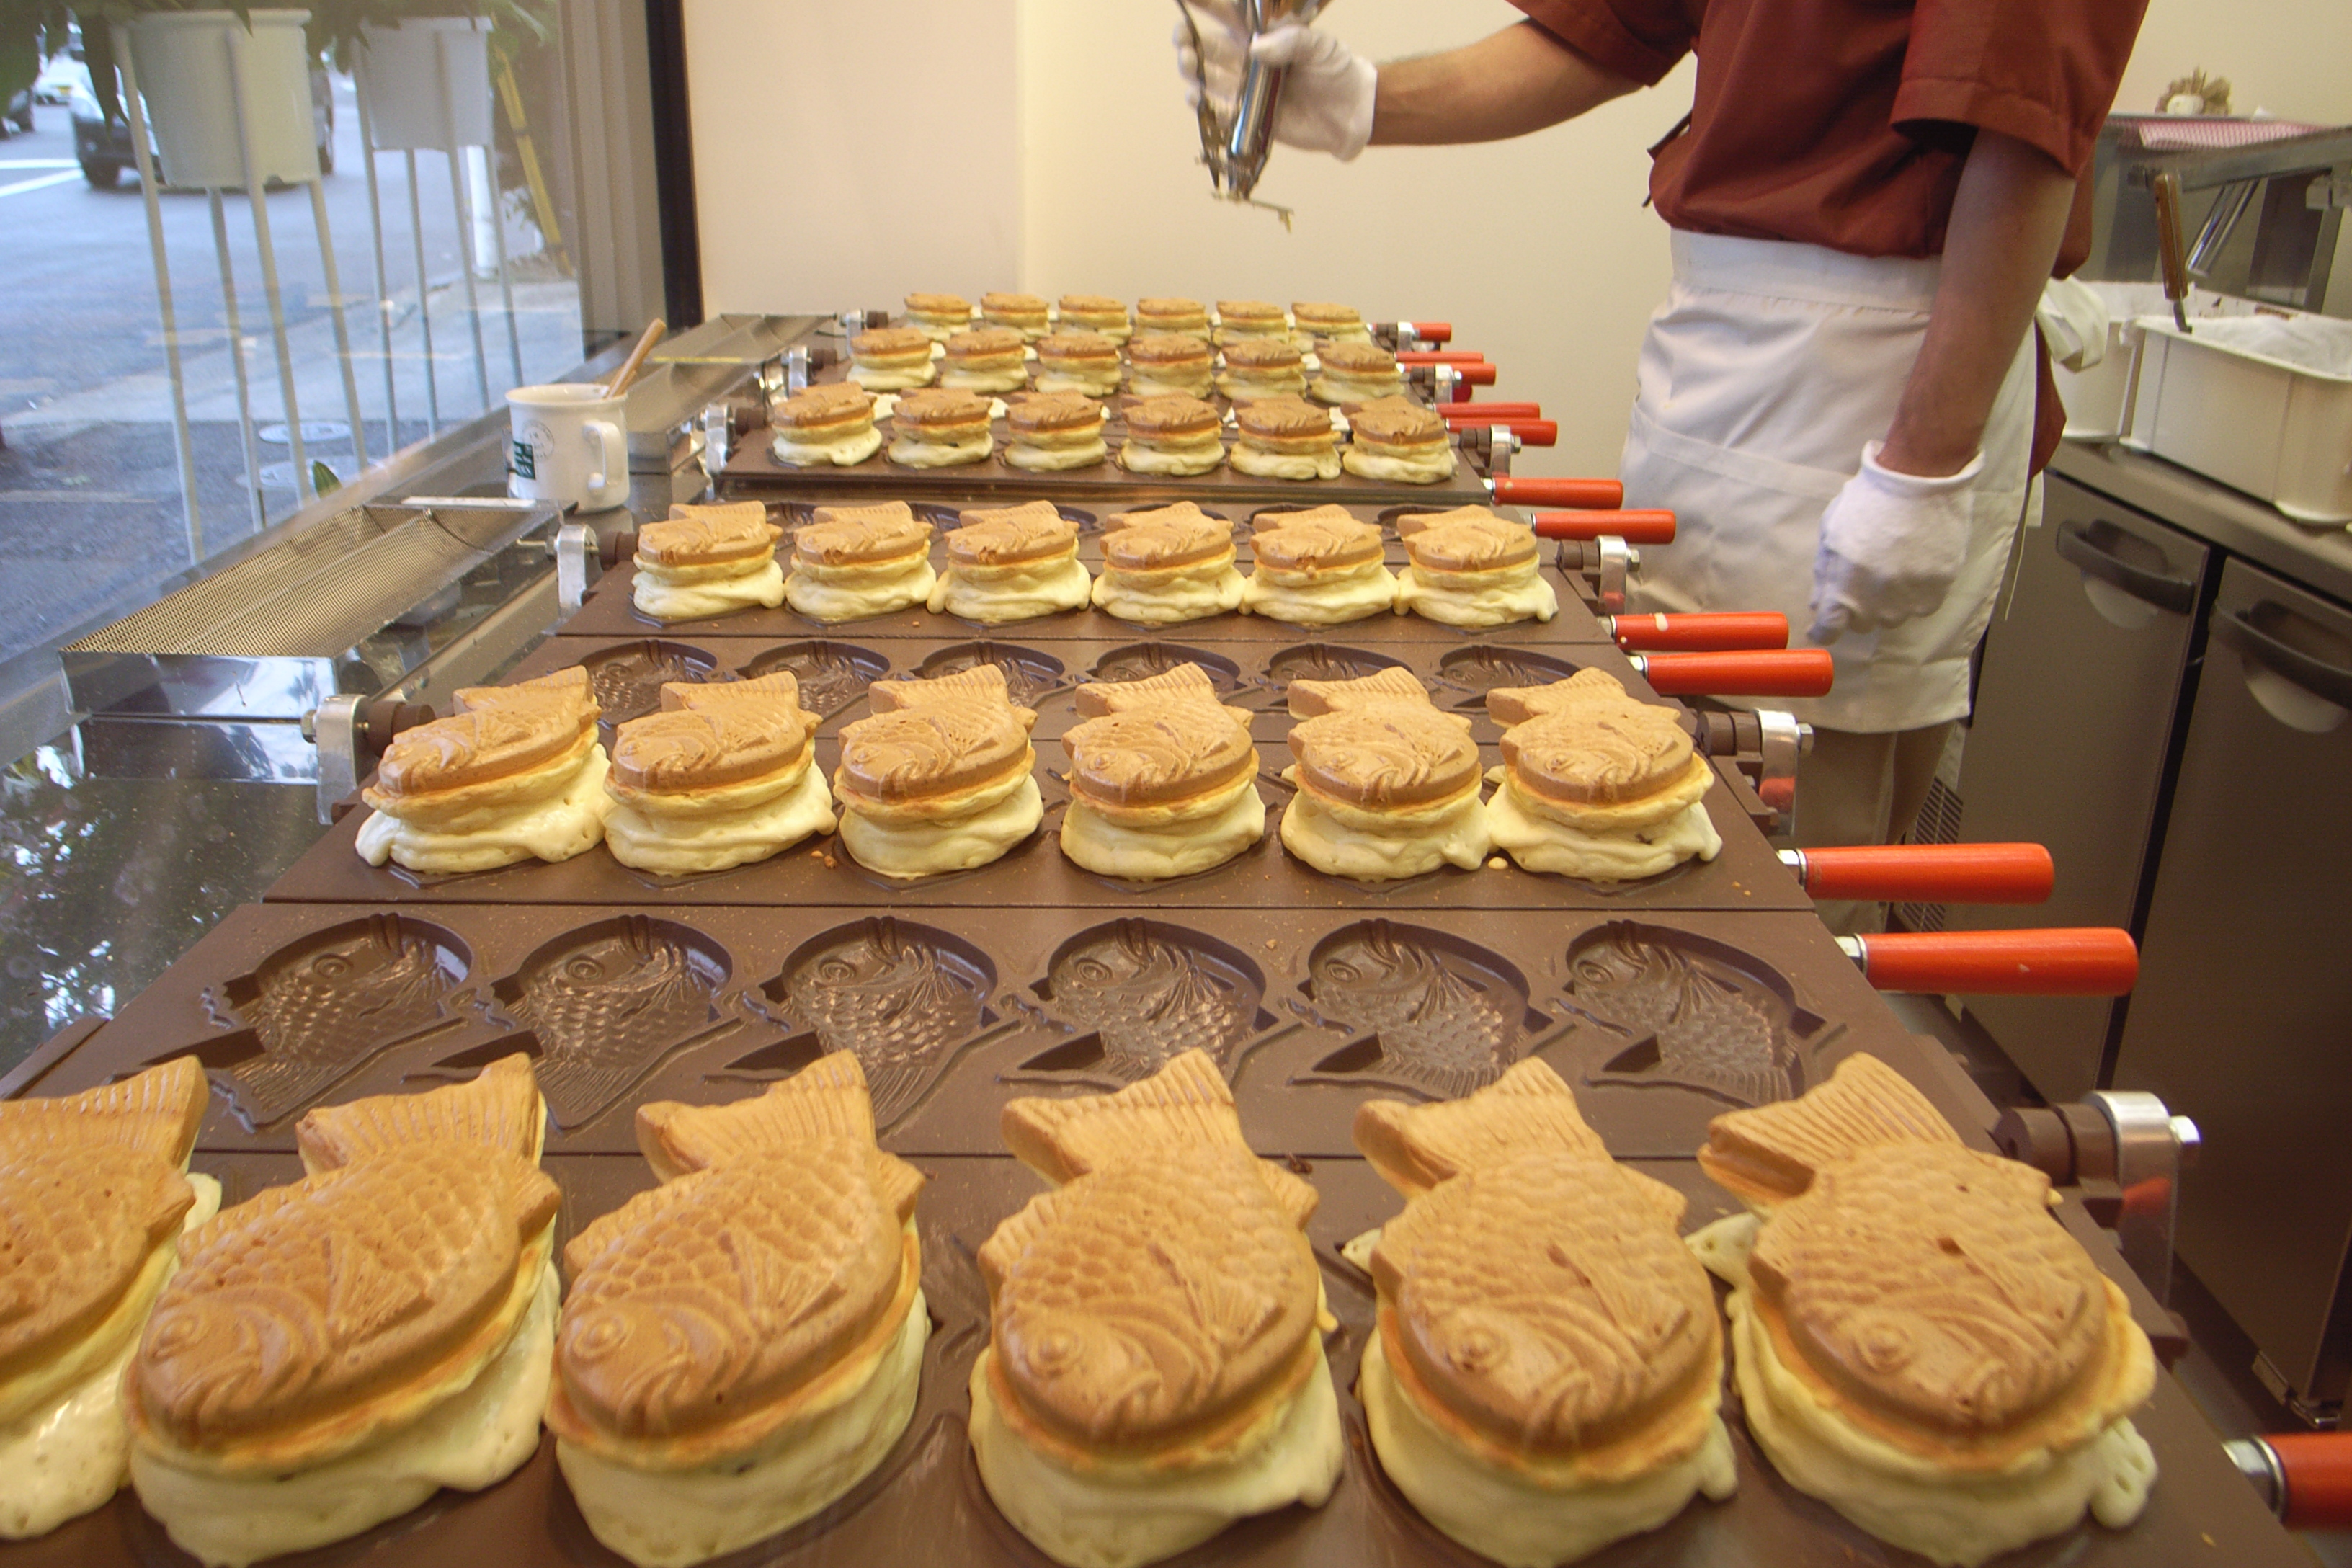 http://upload.wikimedia.org/wikipedia/commons/0/06/Taiyaki_baking_by_ope_in_Tokyo.jpg